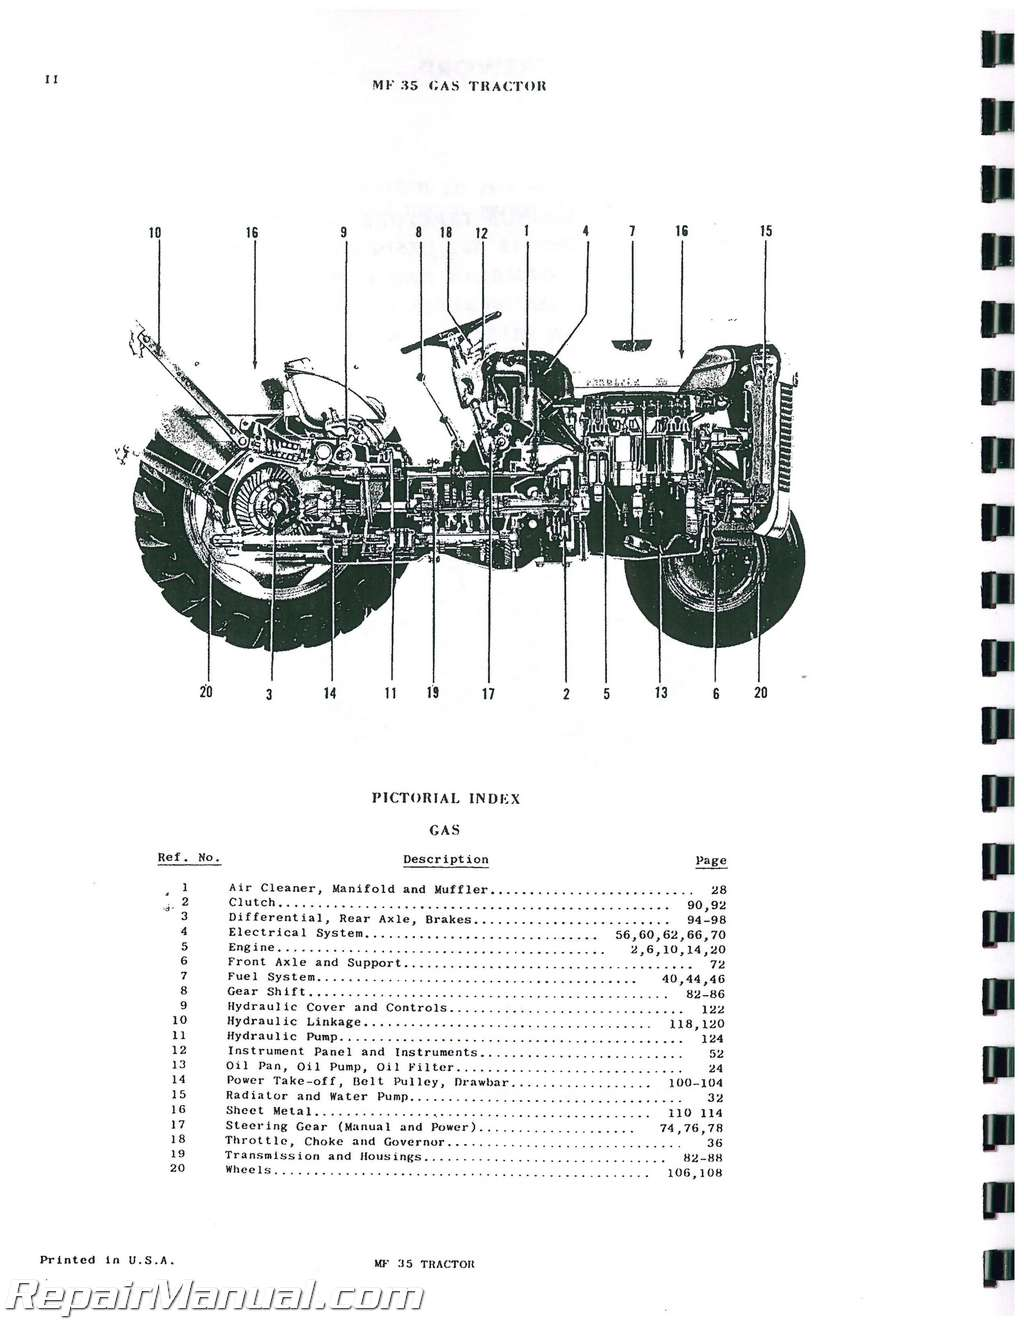 Septic Tank Pump Wiring Diagram also Bilge Pump Wiring Question 20328 moreover Cooler Switches together with Massey Ferguson 35 Tractor Wiring Diagram moreover Septic Dual Switch Wiring. on bilge pump wiring diagrams with float switch